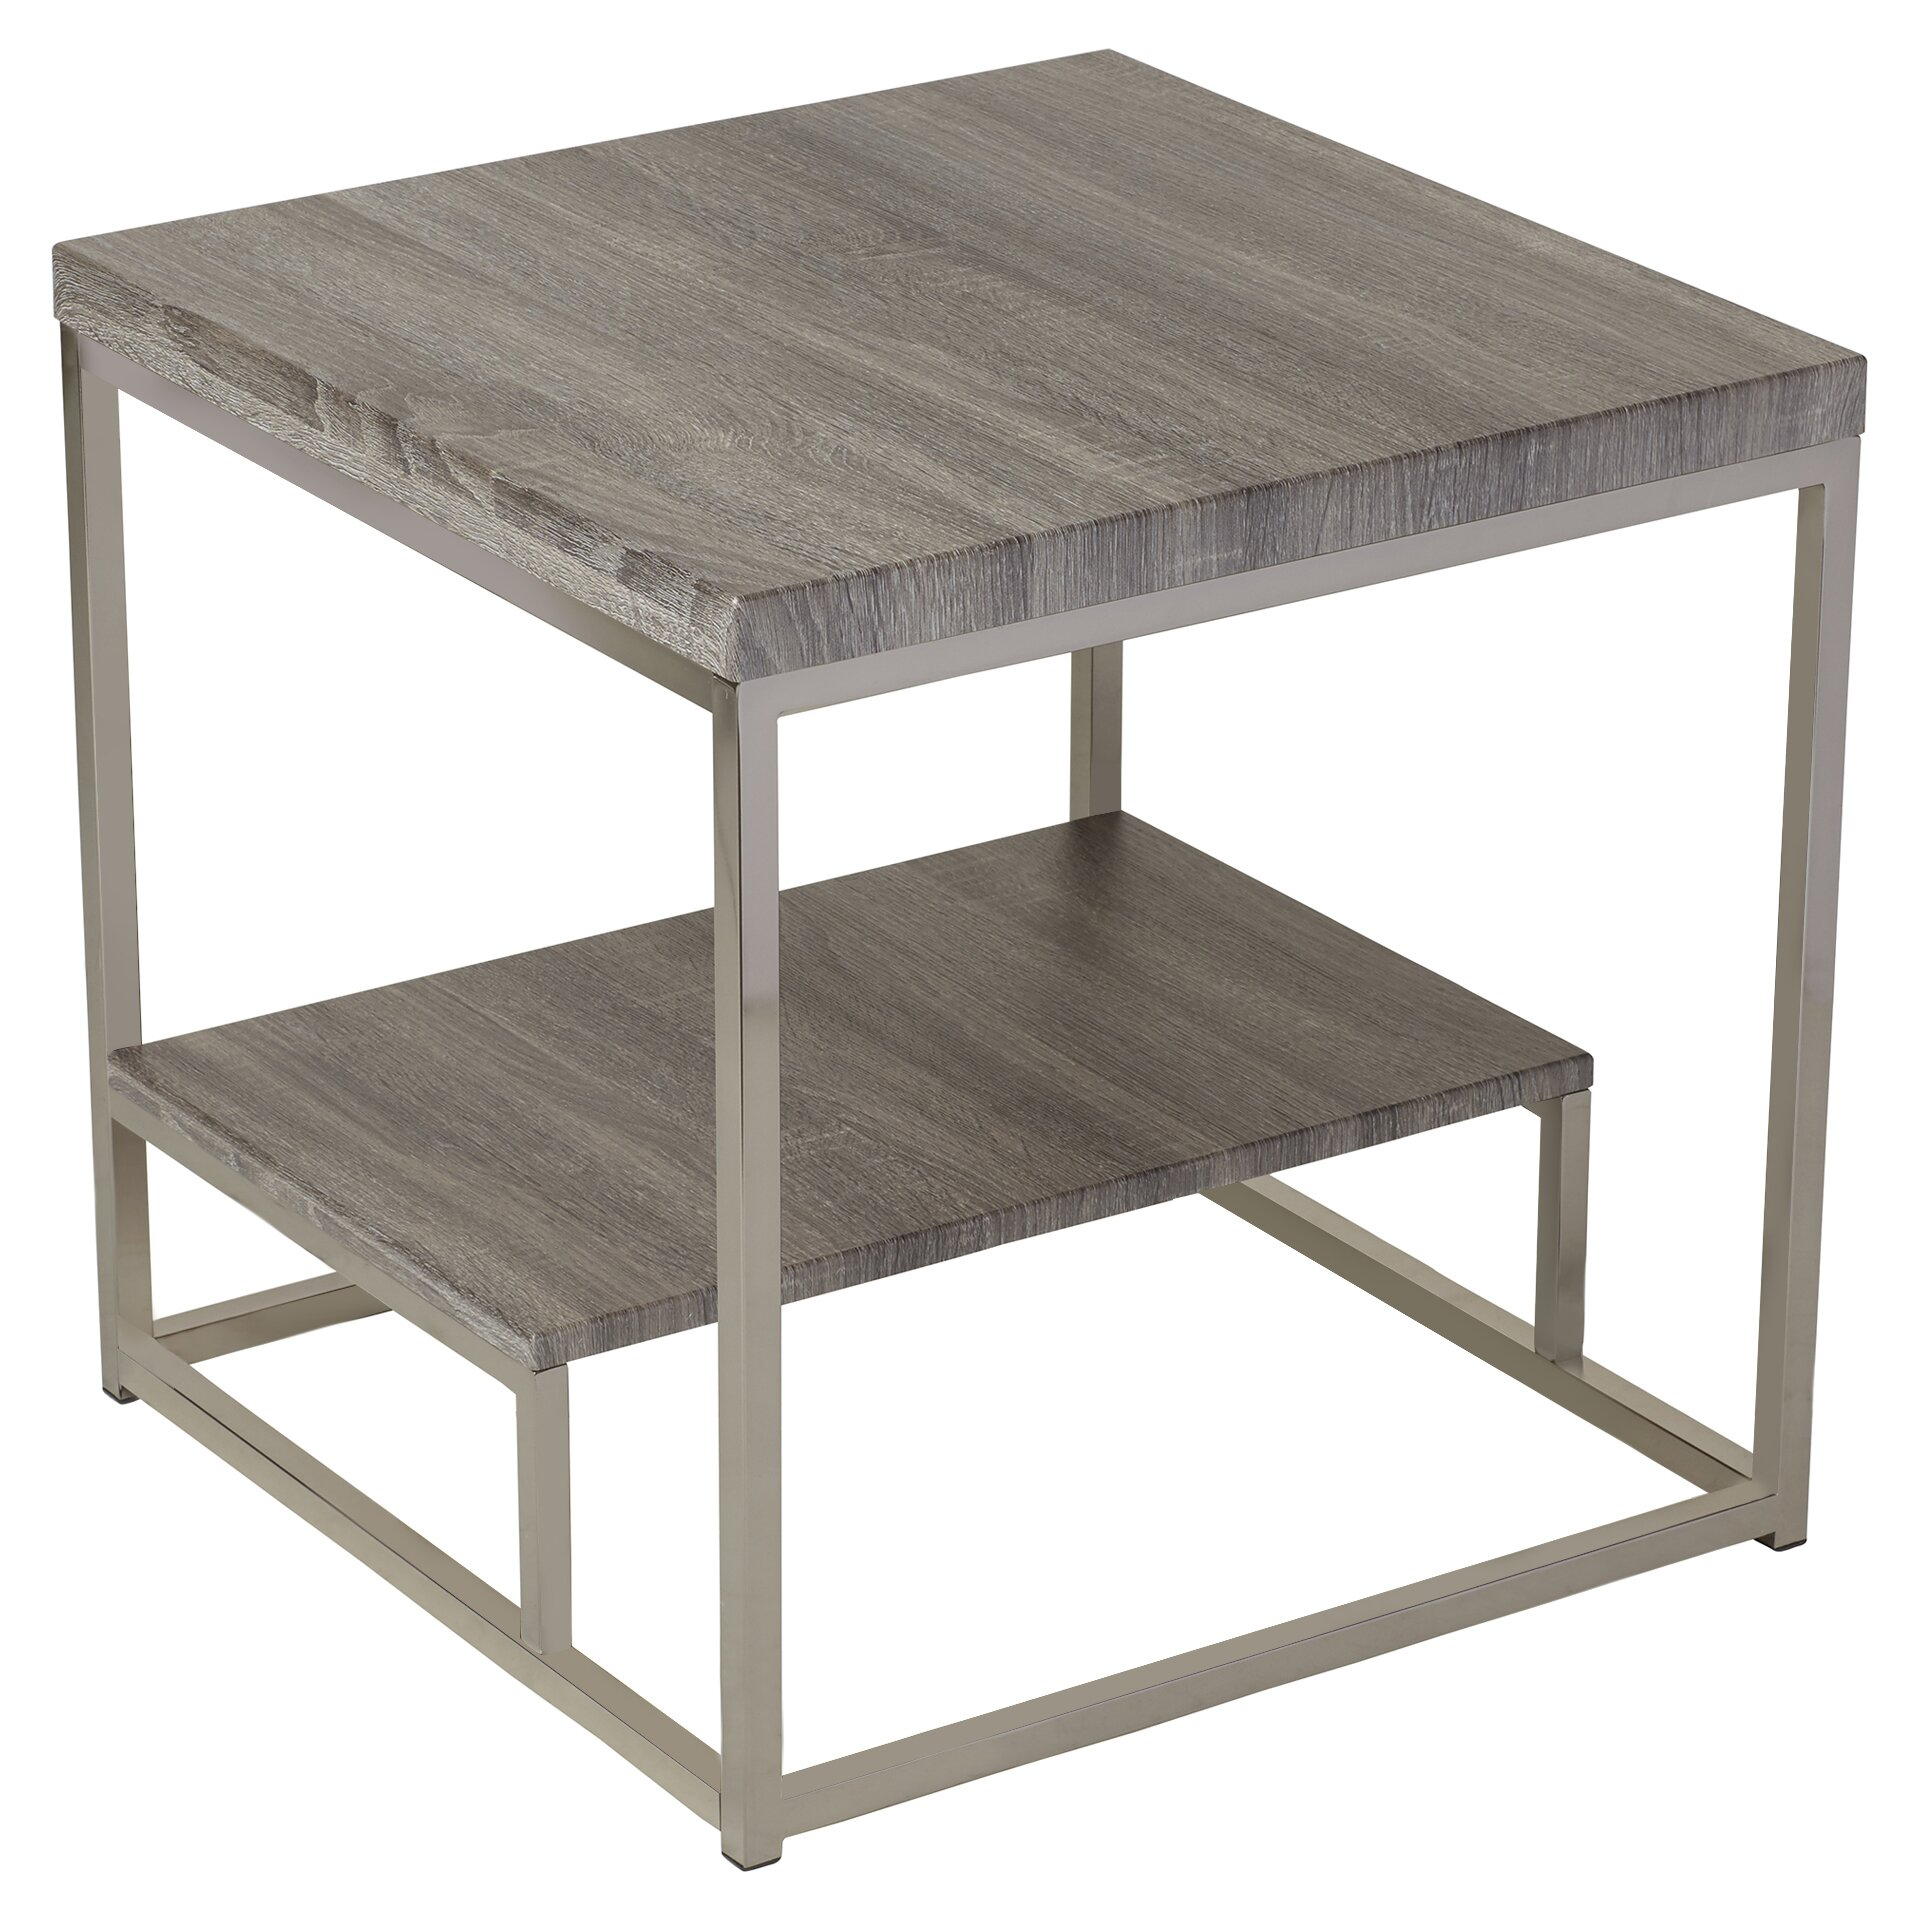 tag jcpenney furniture dining room sets 187 modern home design trestle dining collection jcpenney dining room pinterest